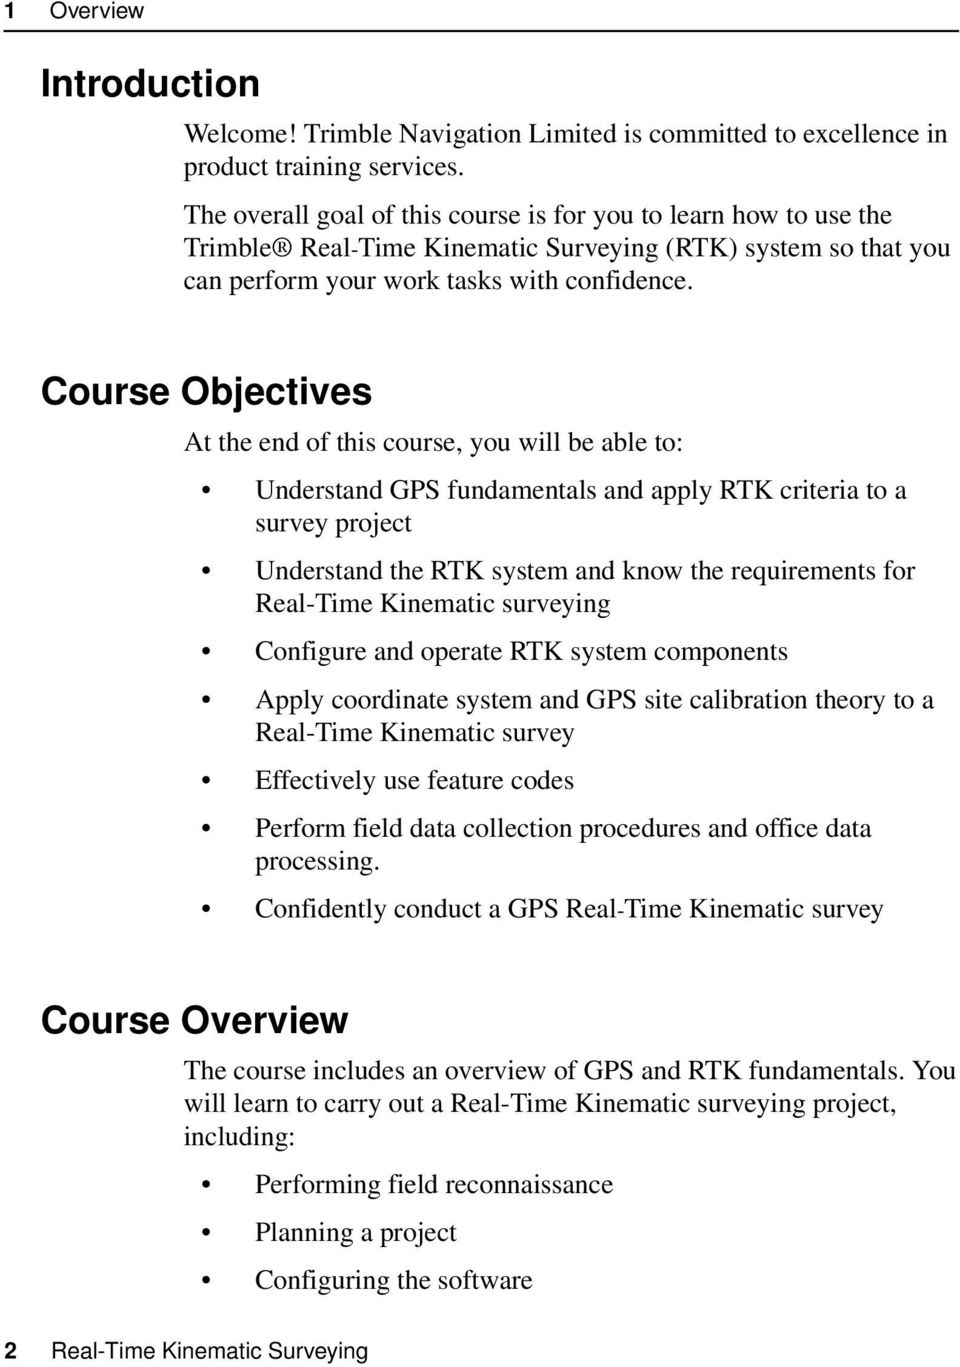 introduction to quantity surveying pdf